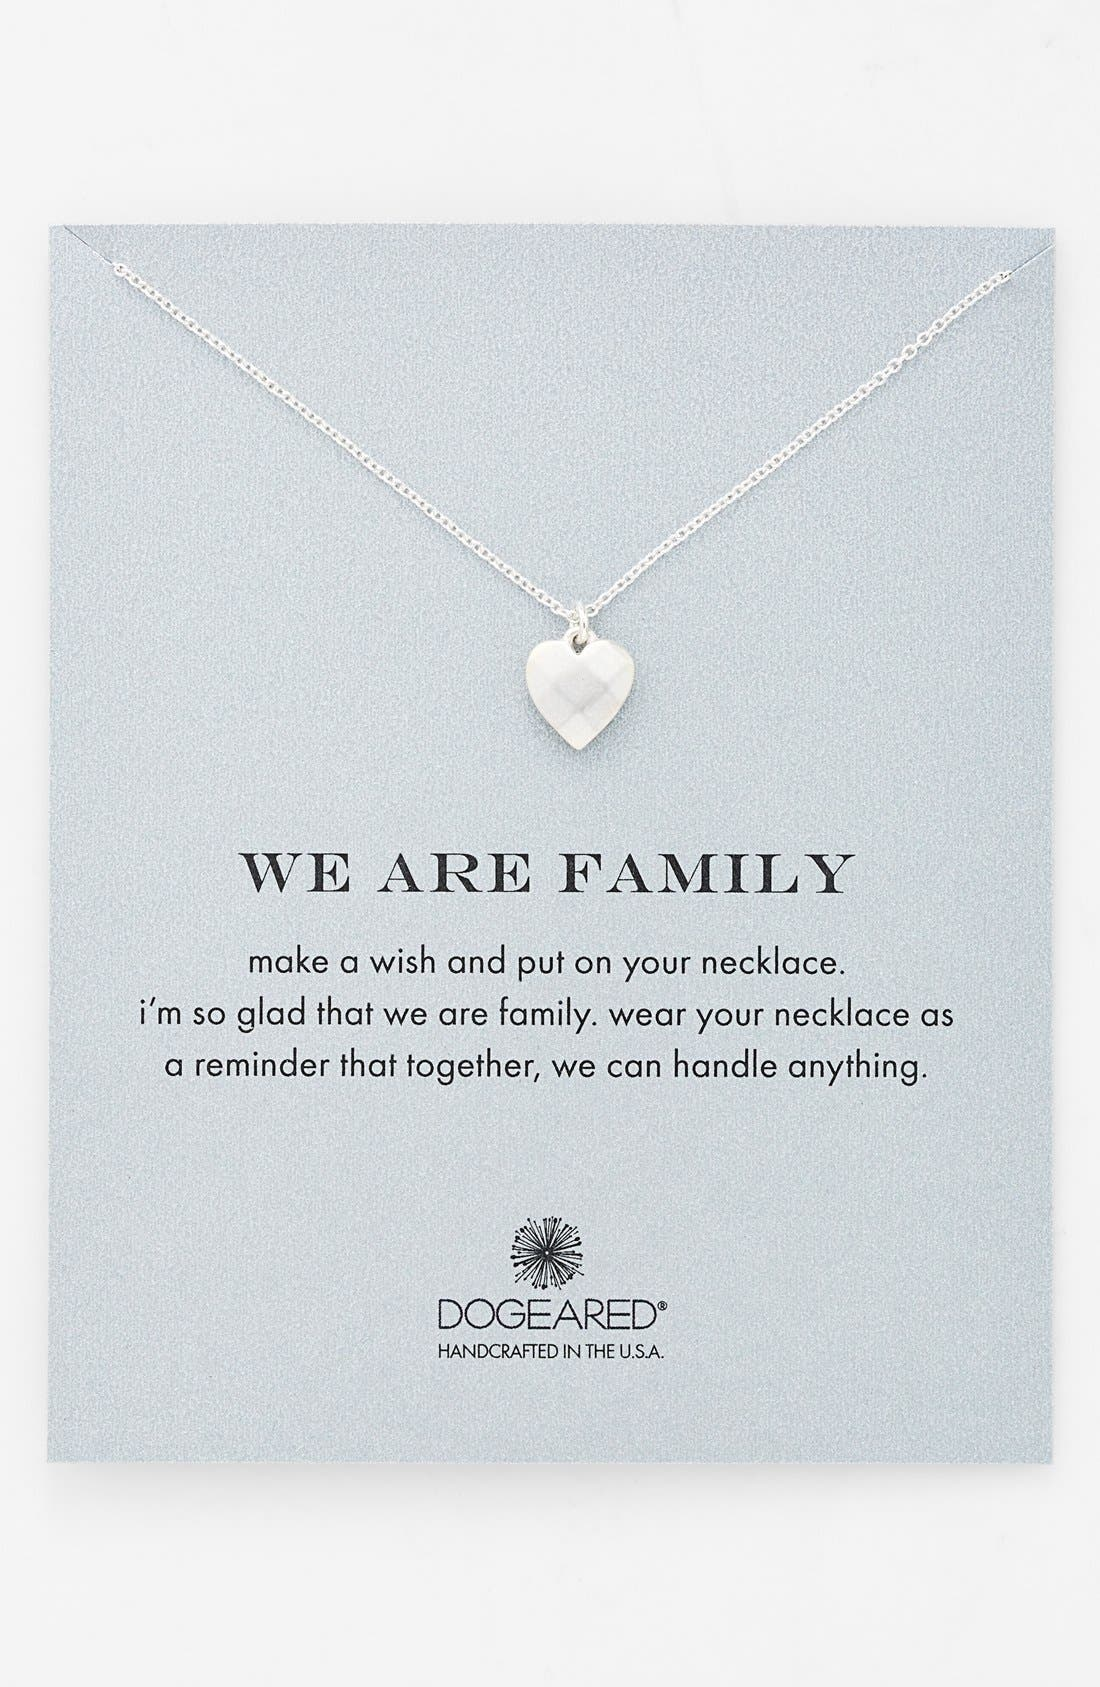 Alternate Image 1 Selected - Dogeared 'We Are Family' Boxed Pendant Necklace